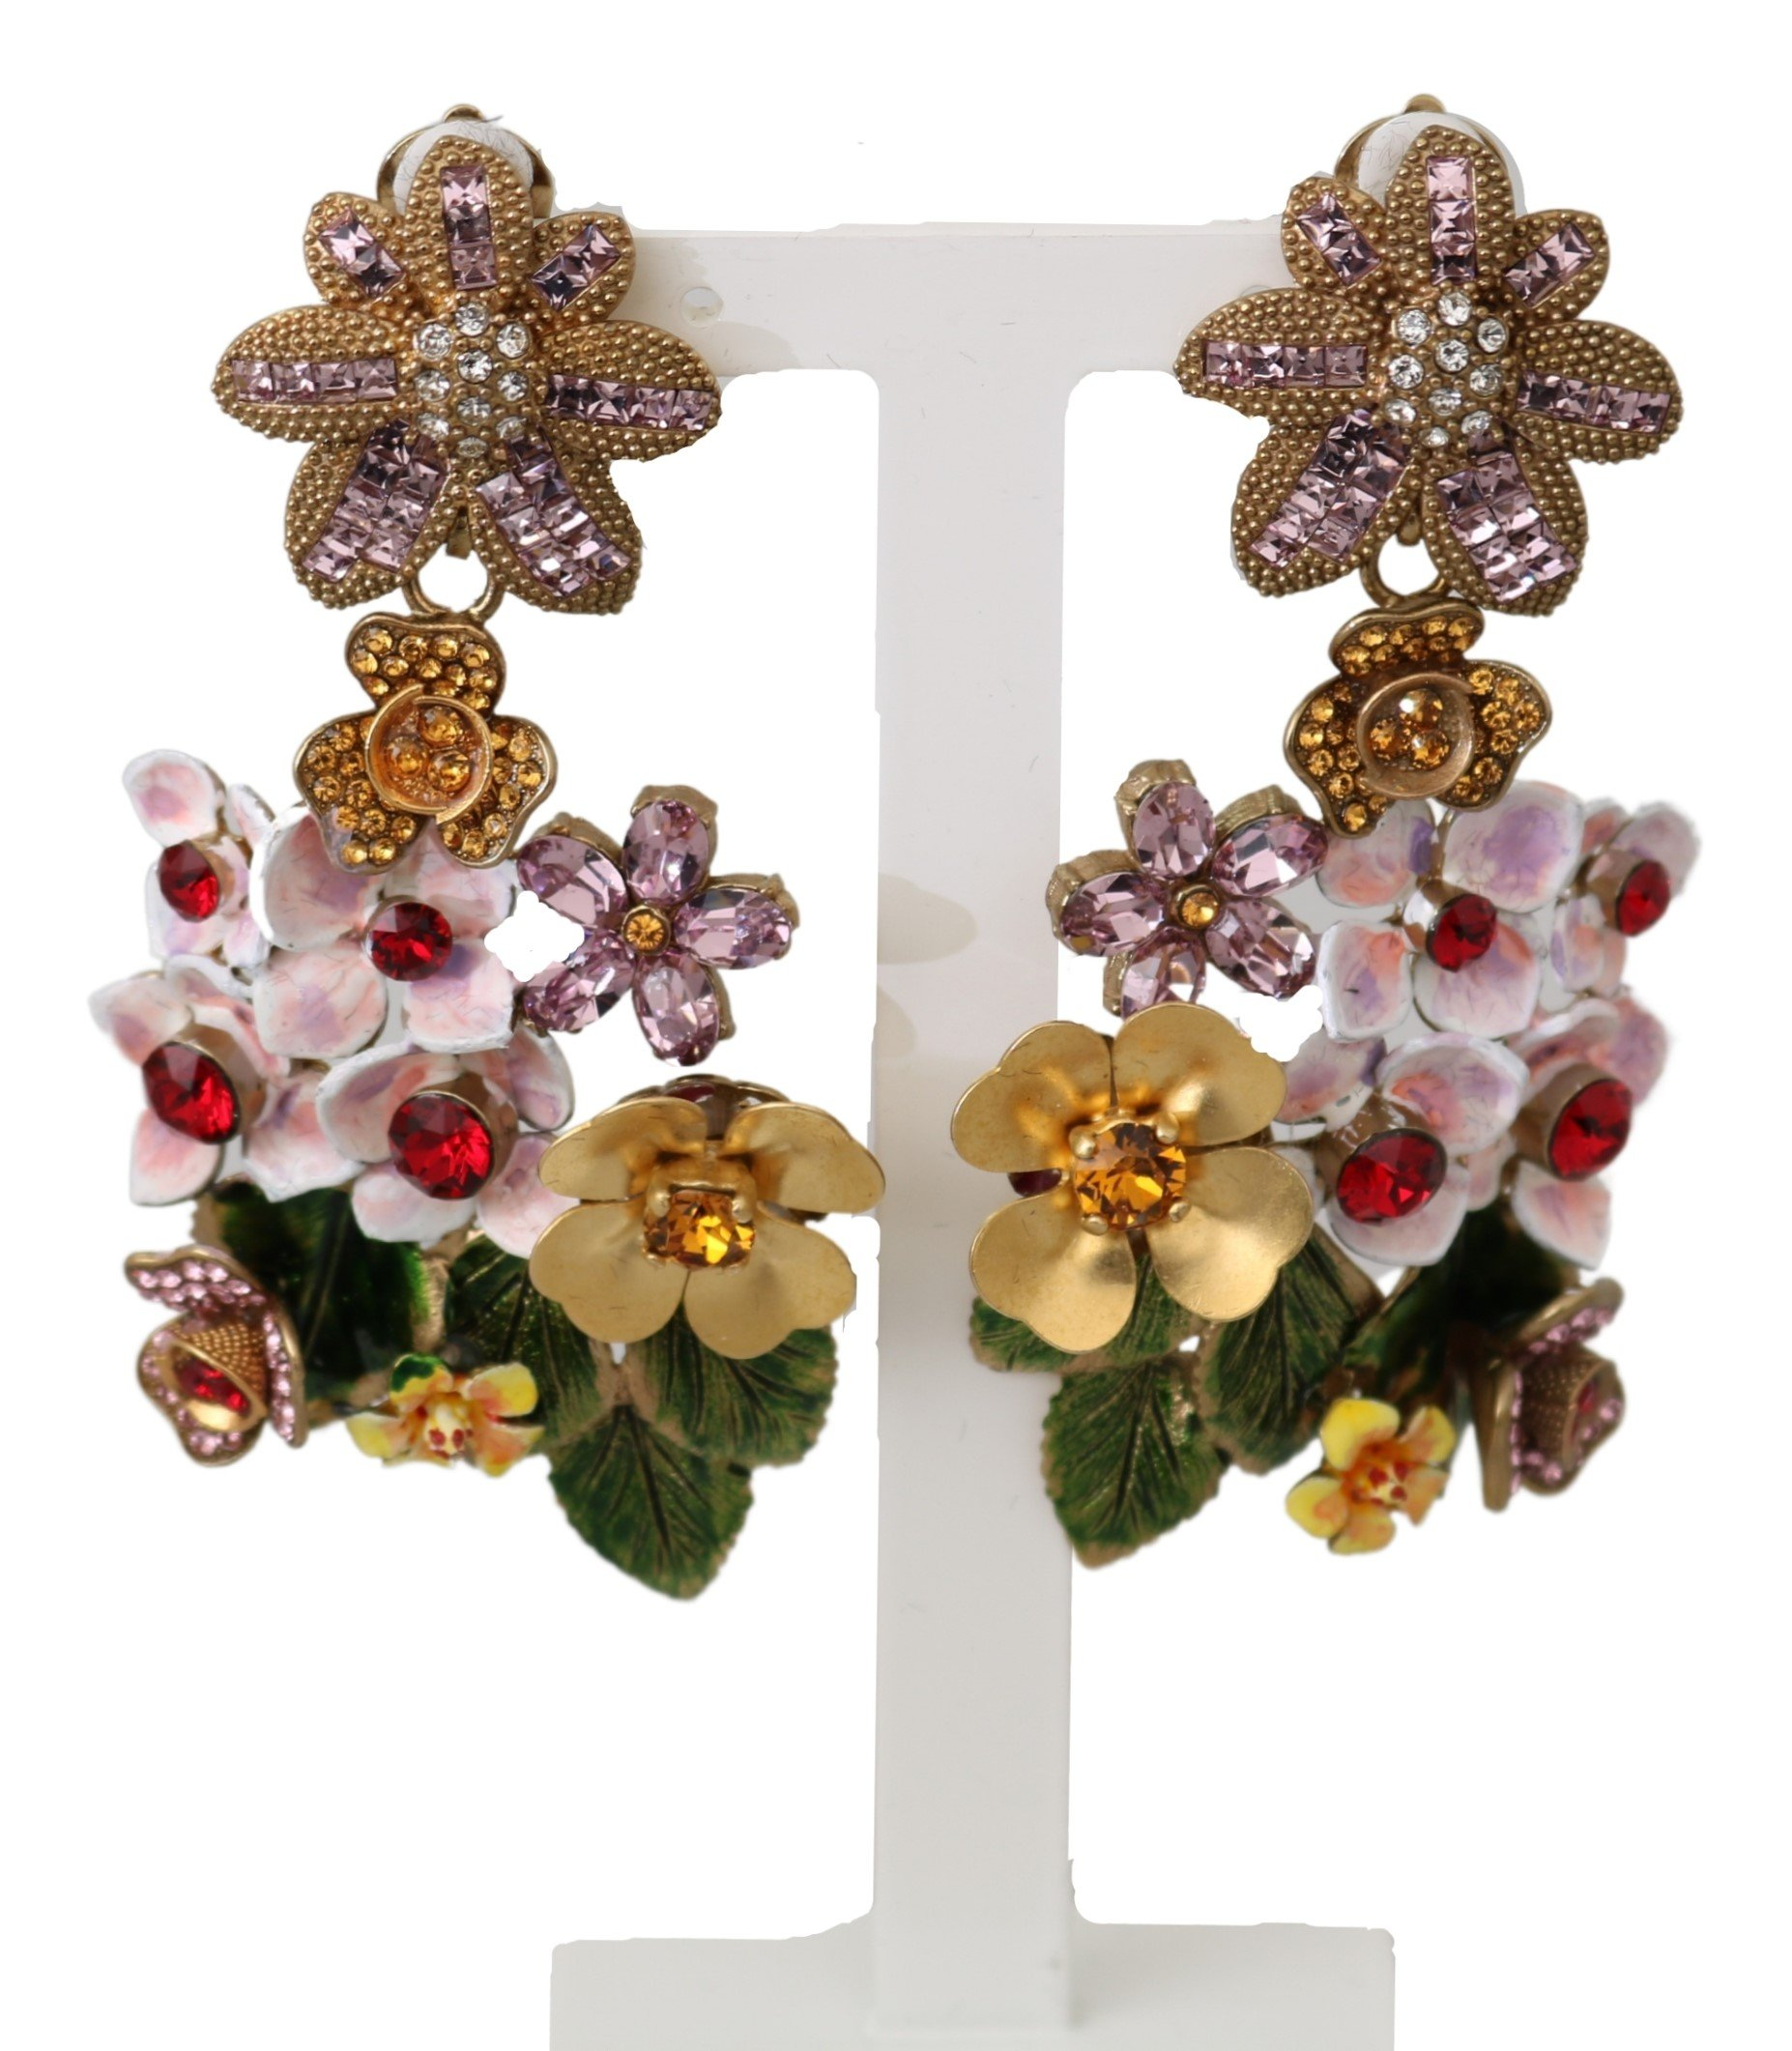 Dolce & Gabbana Women's Crystal Floral Filigree Clip-on Earrings Gold SMY10091